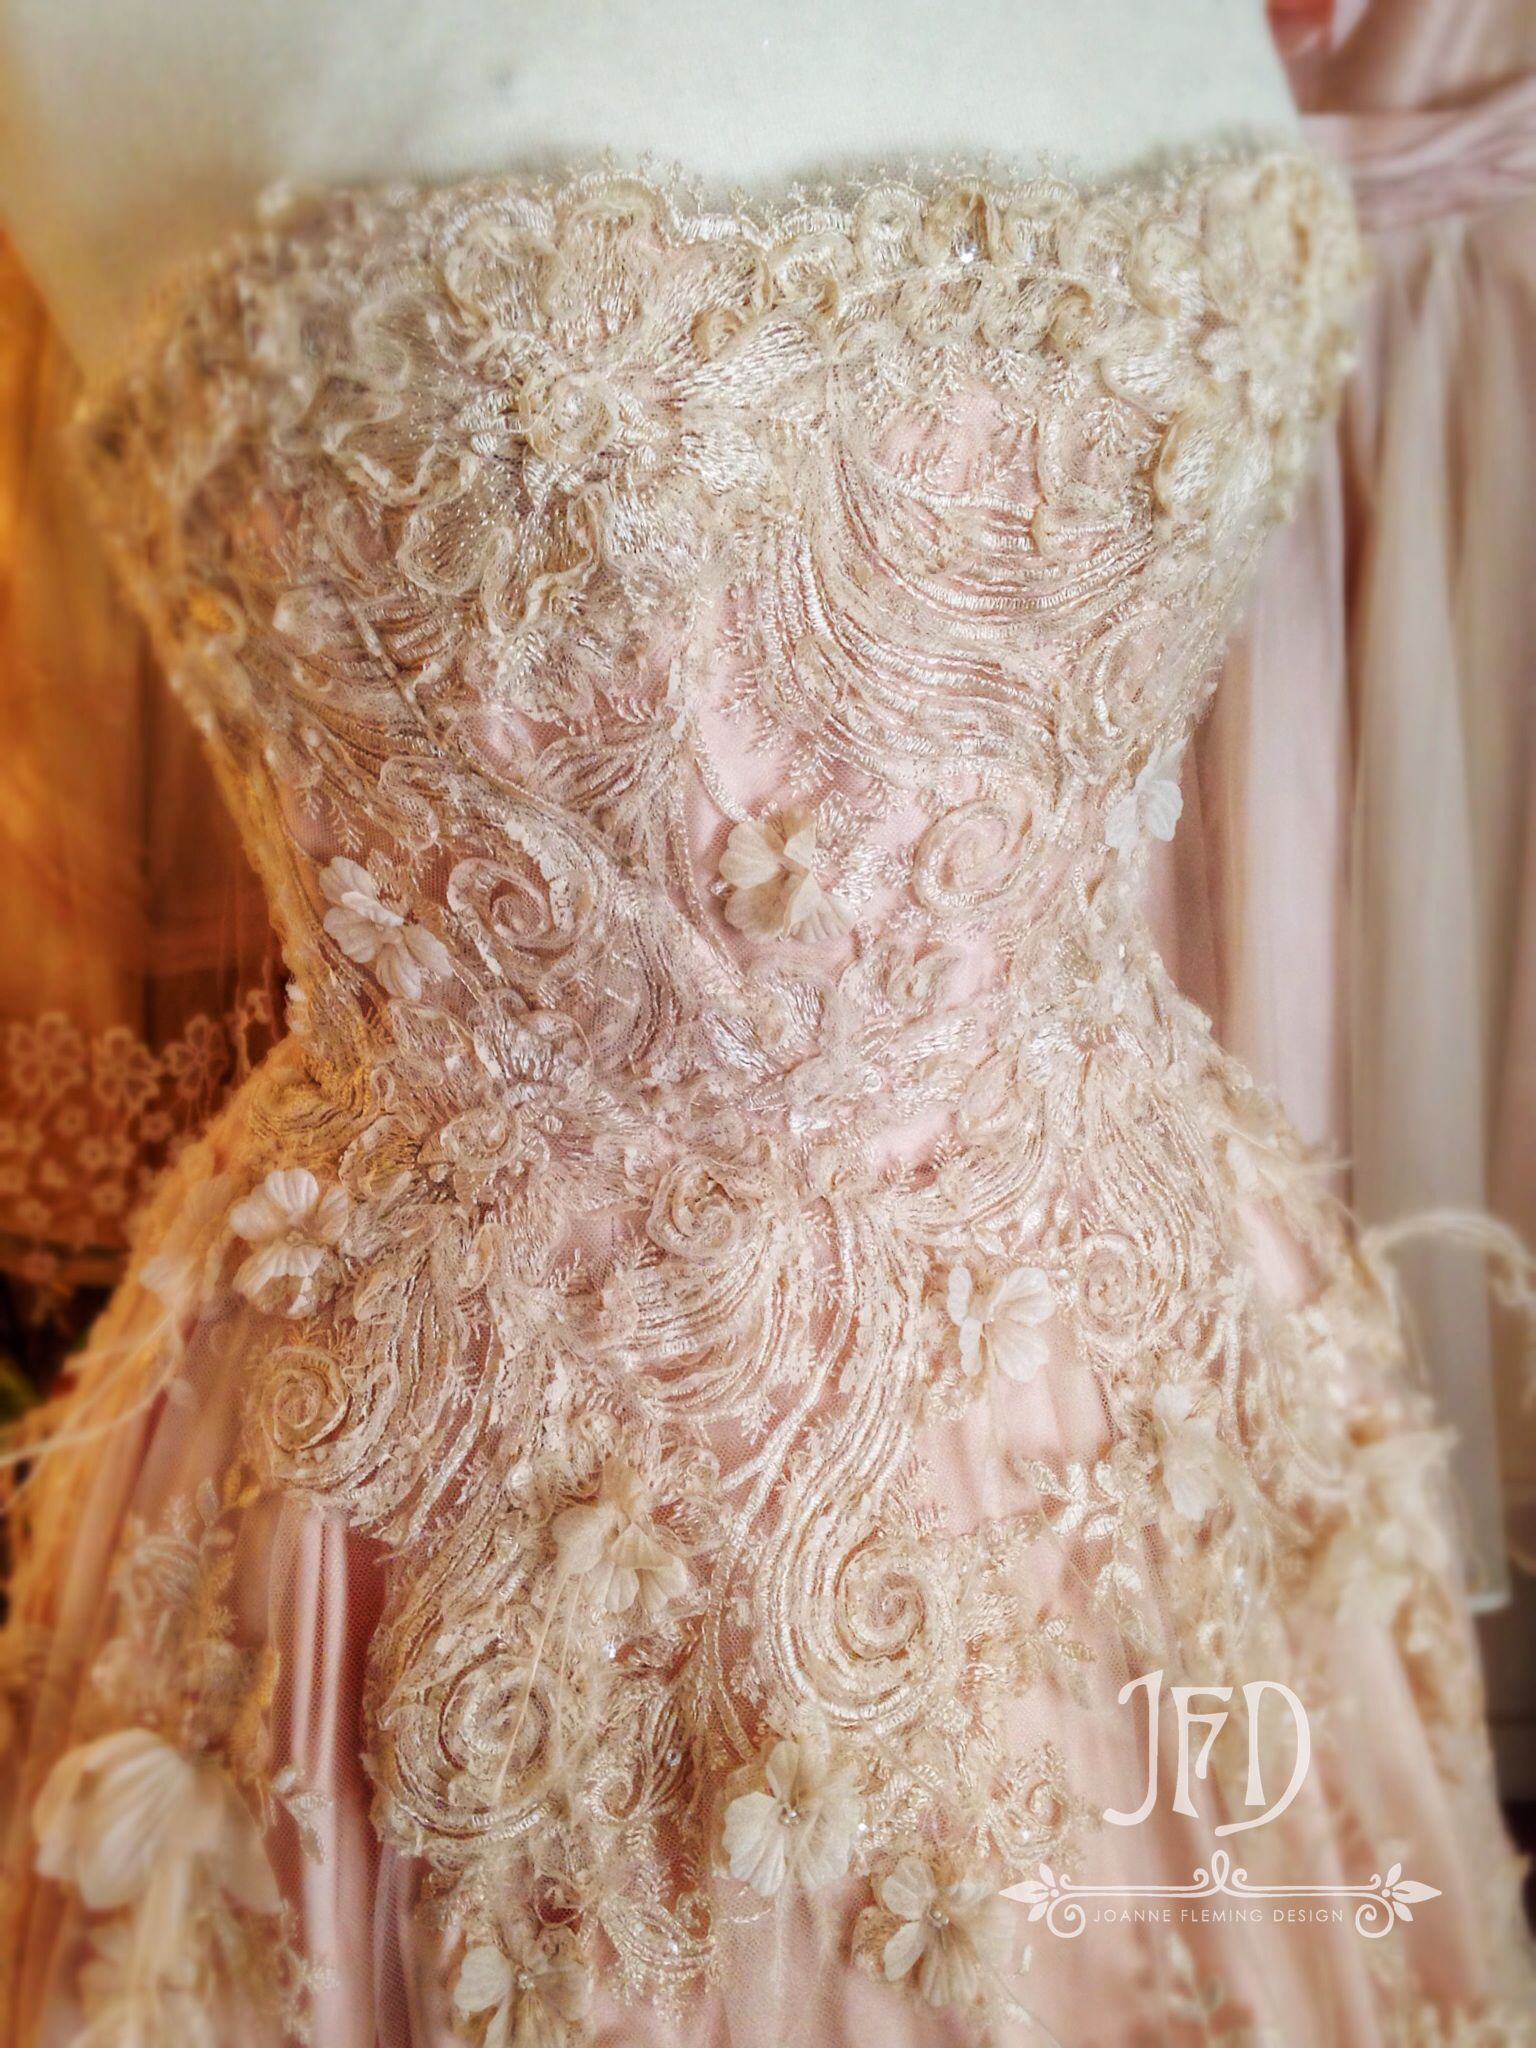 Joanne fleming design 39 carousel 39 champagne embellished for Champagne tea length wedding dresses